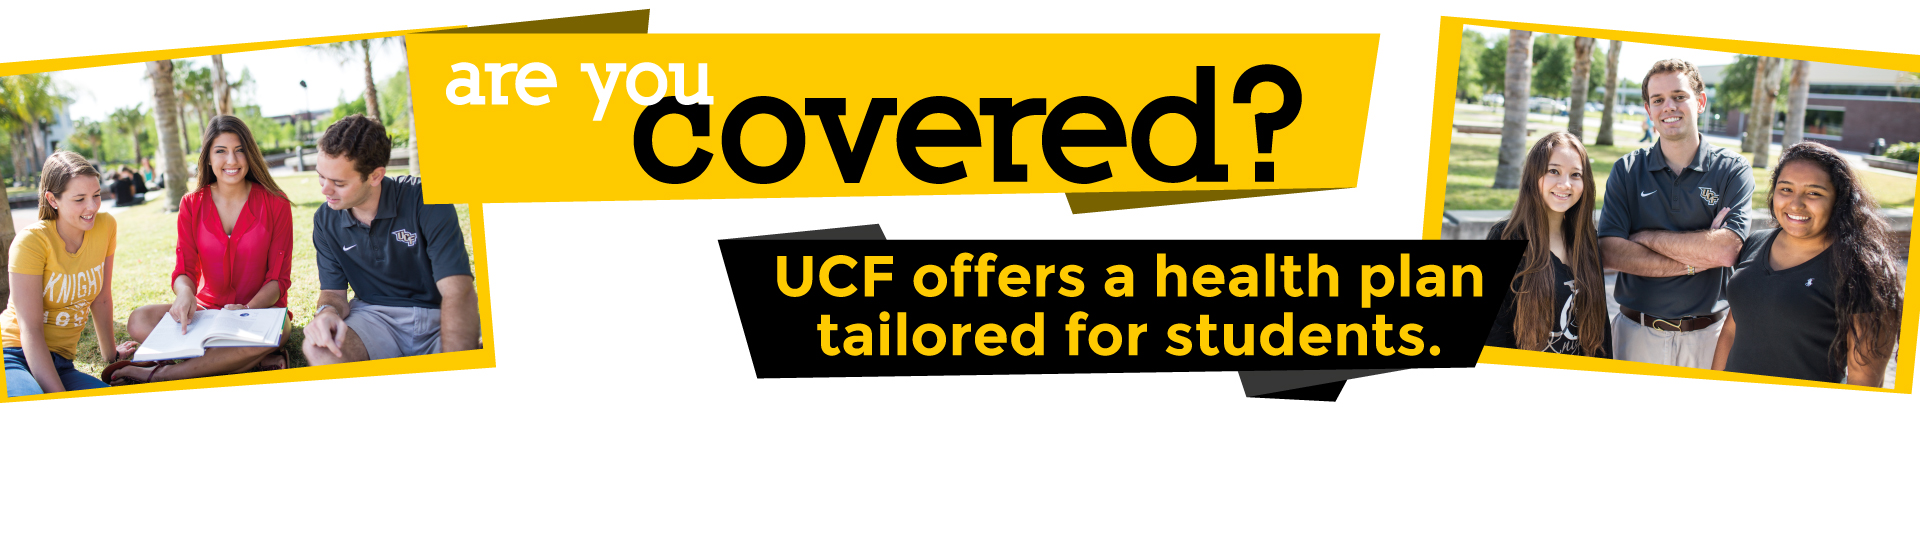 student health services u2022 ucf